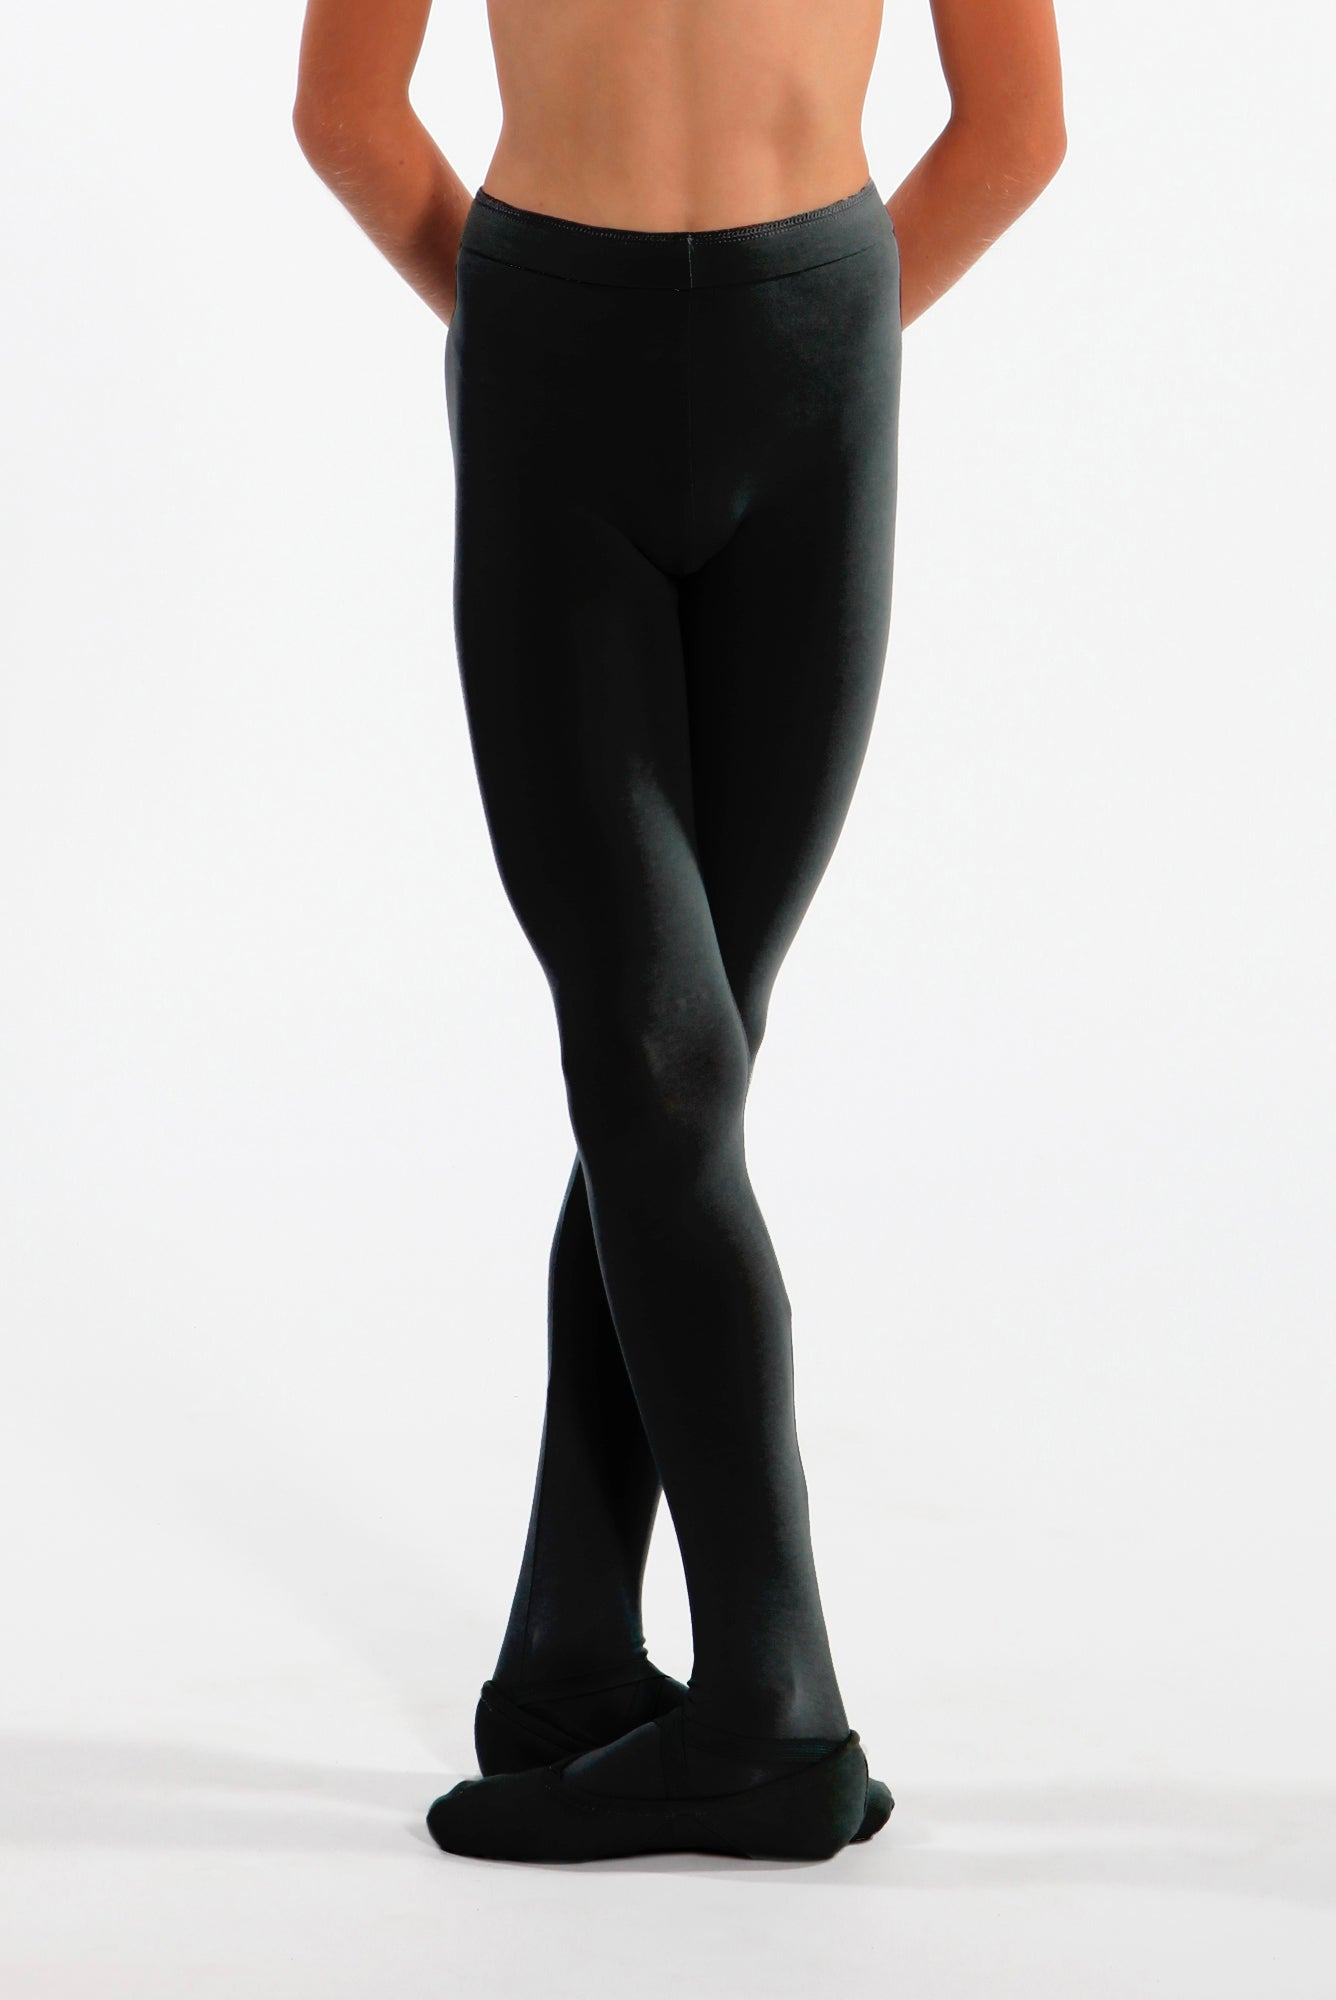 Wear Moi Solo Men's Footed Cotton Tights